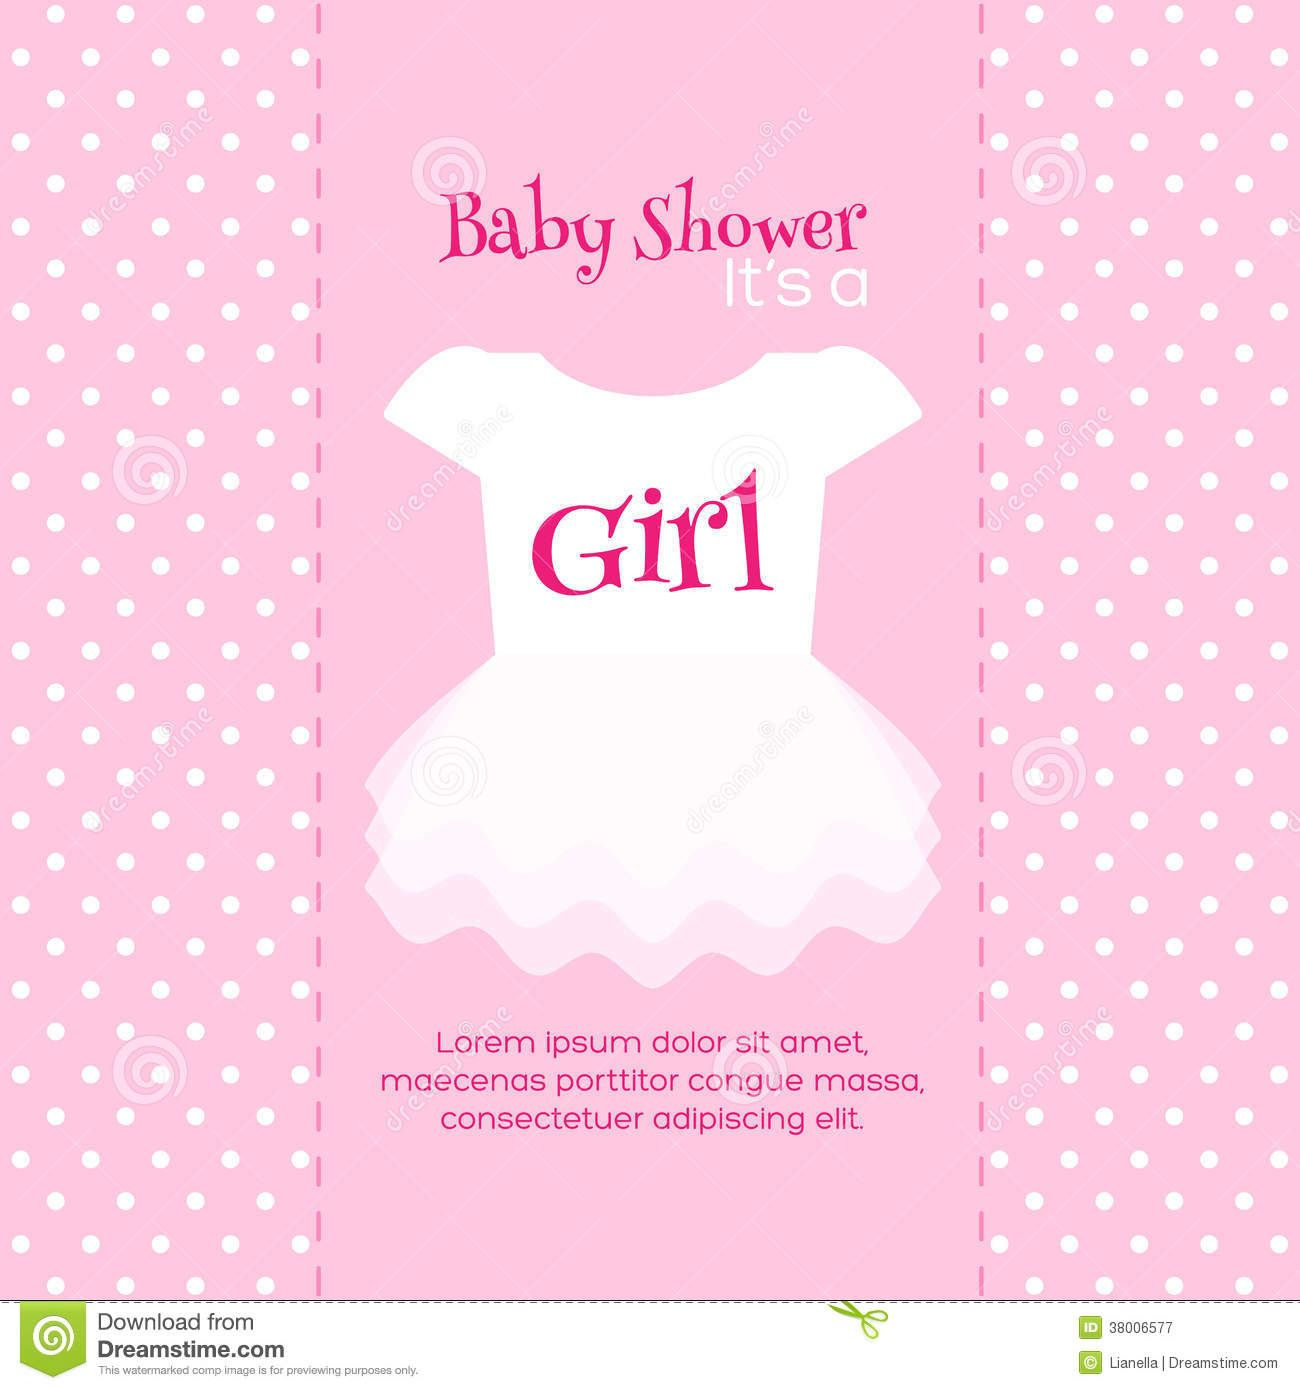 001 Template Ideas Baby Shower Cards ~ Ulyssesroom - Baby Shower Cards Online Free Printable